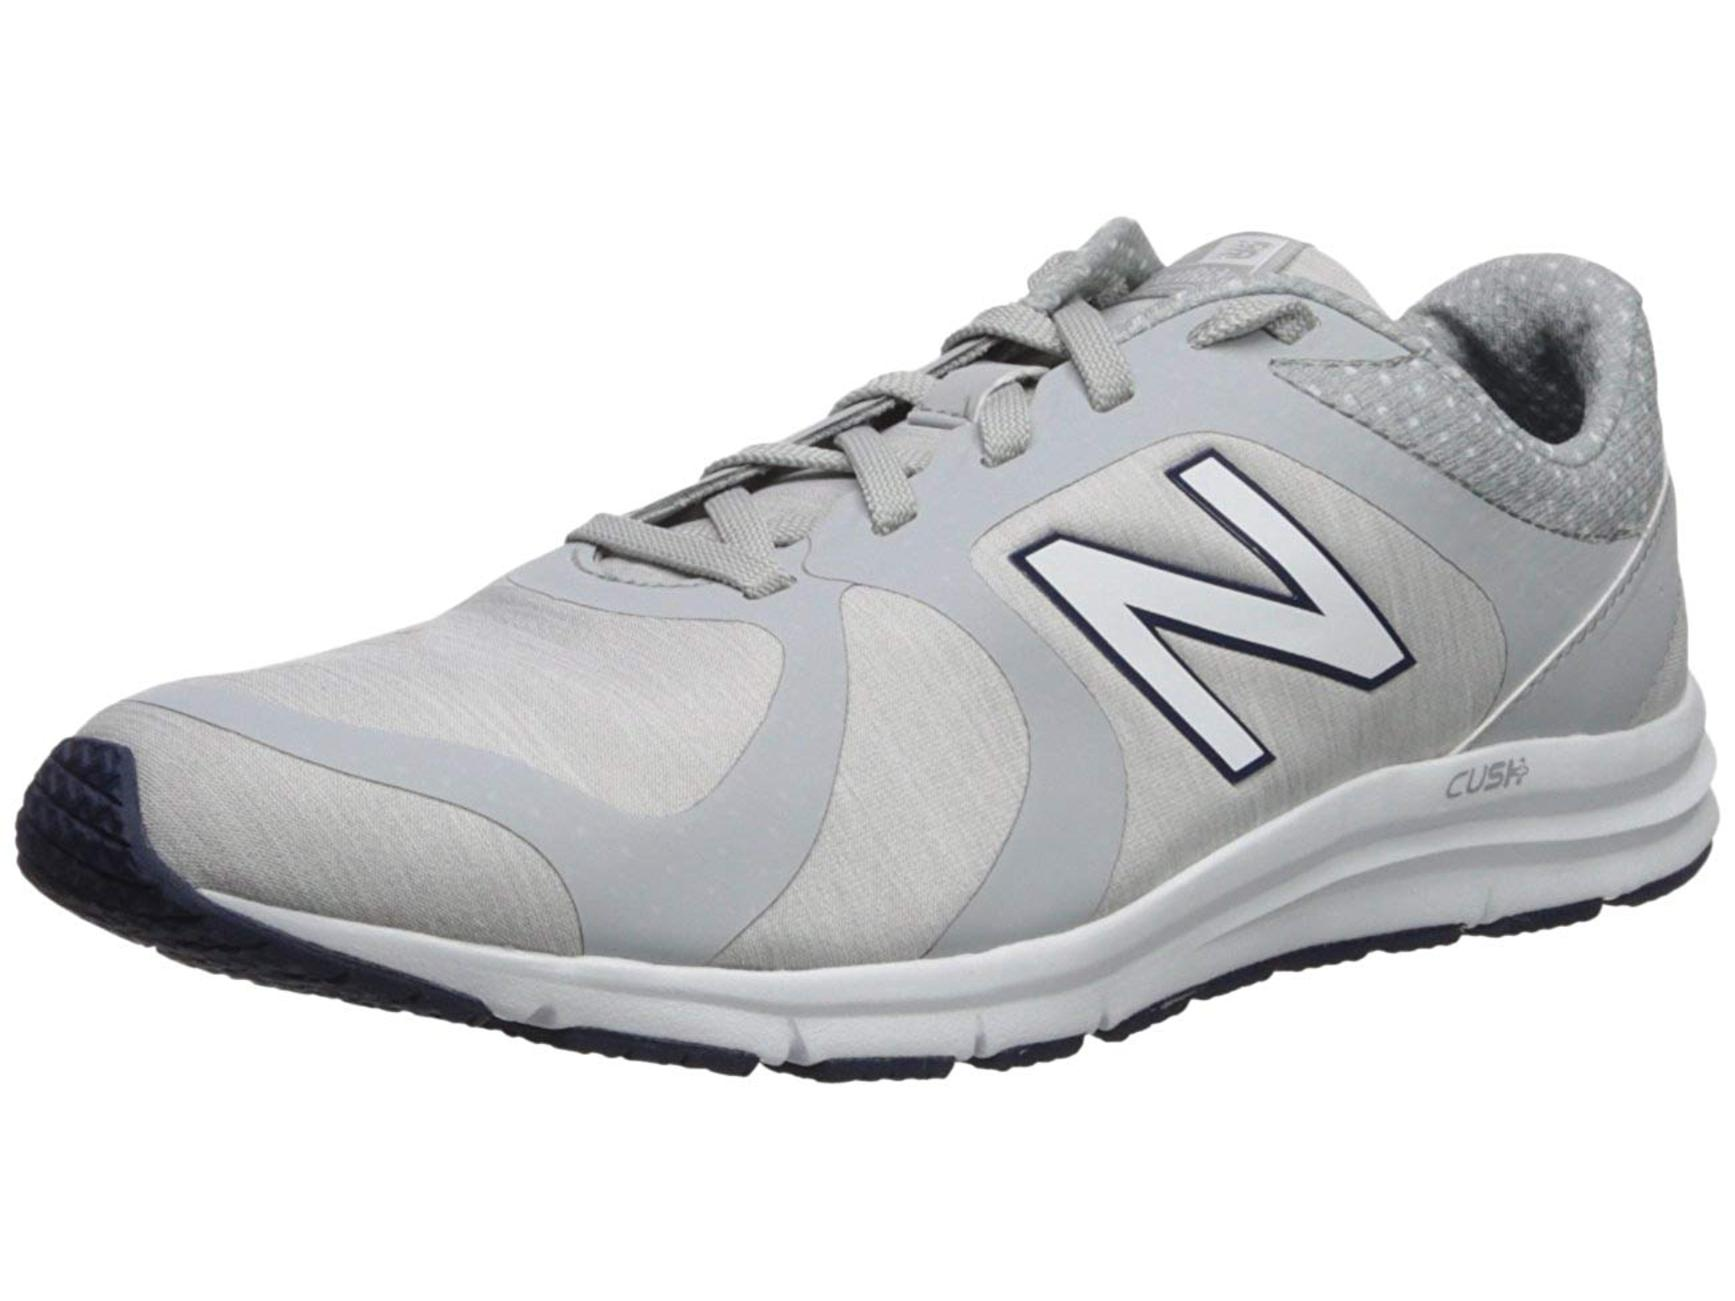 8cd04552963c New Balance Womens W635rw2 Low Top Lace Up Running Sneaker